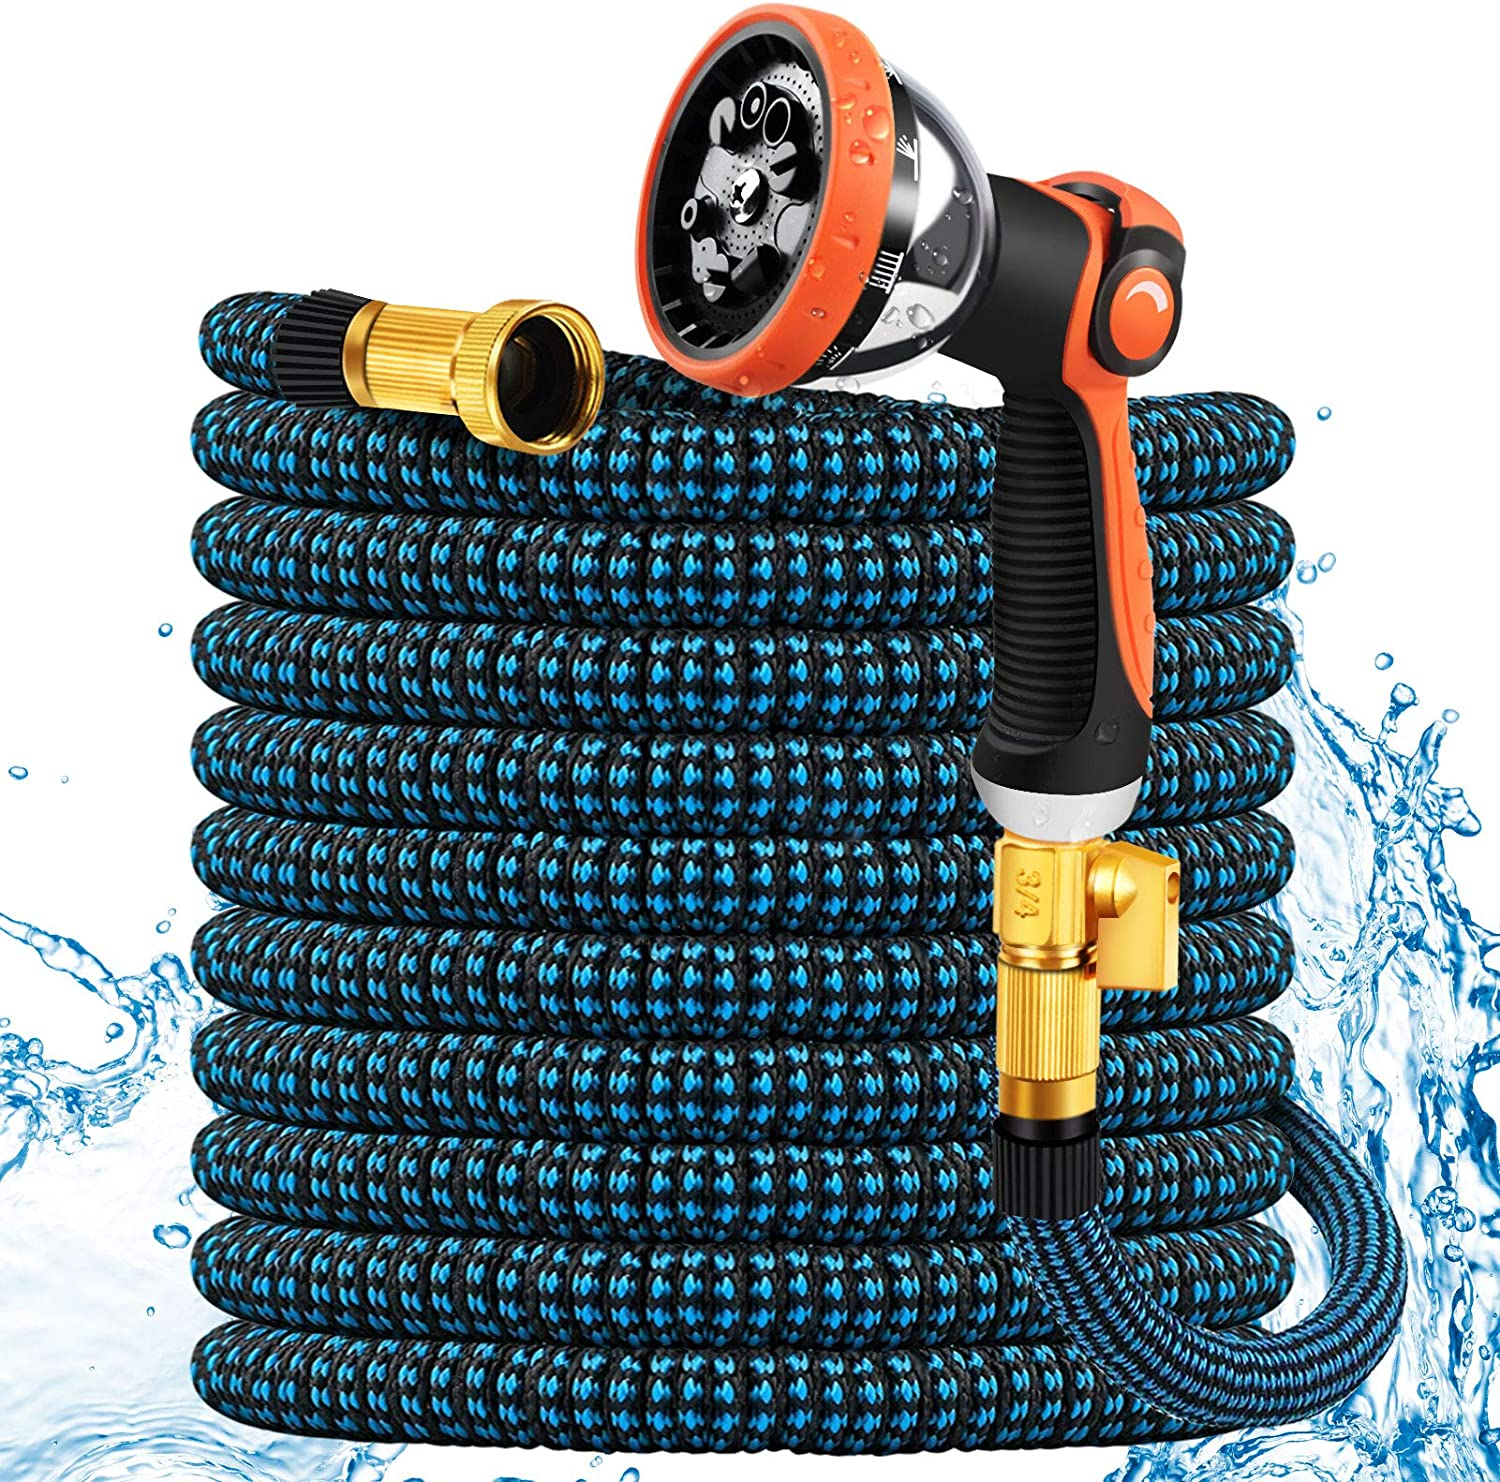 Expandable Garden Hose 25ft, Flexible Lightweight Water Hose with 10 Functiona Spray Nozzle, Expanding Hose for Lawn Car Pet Washing